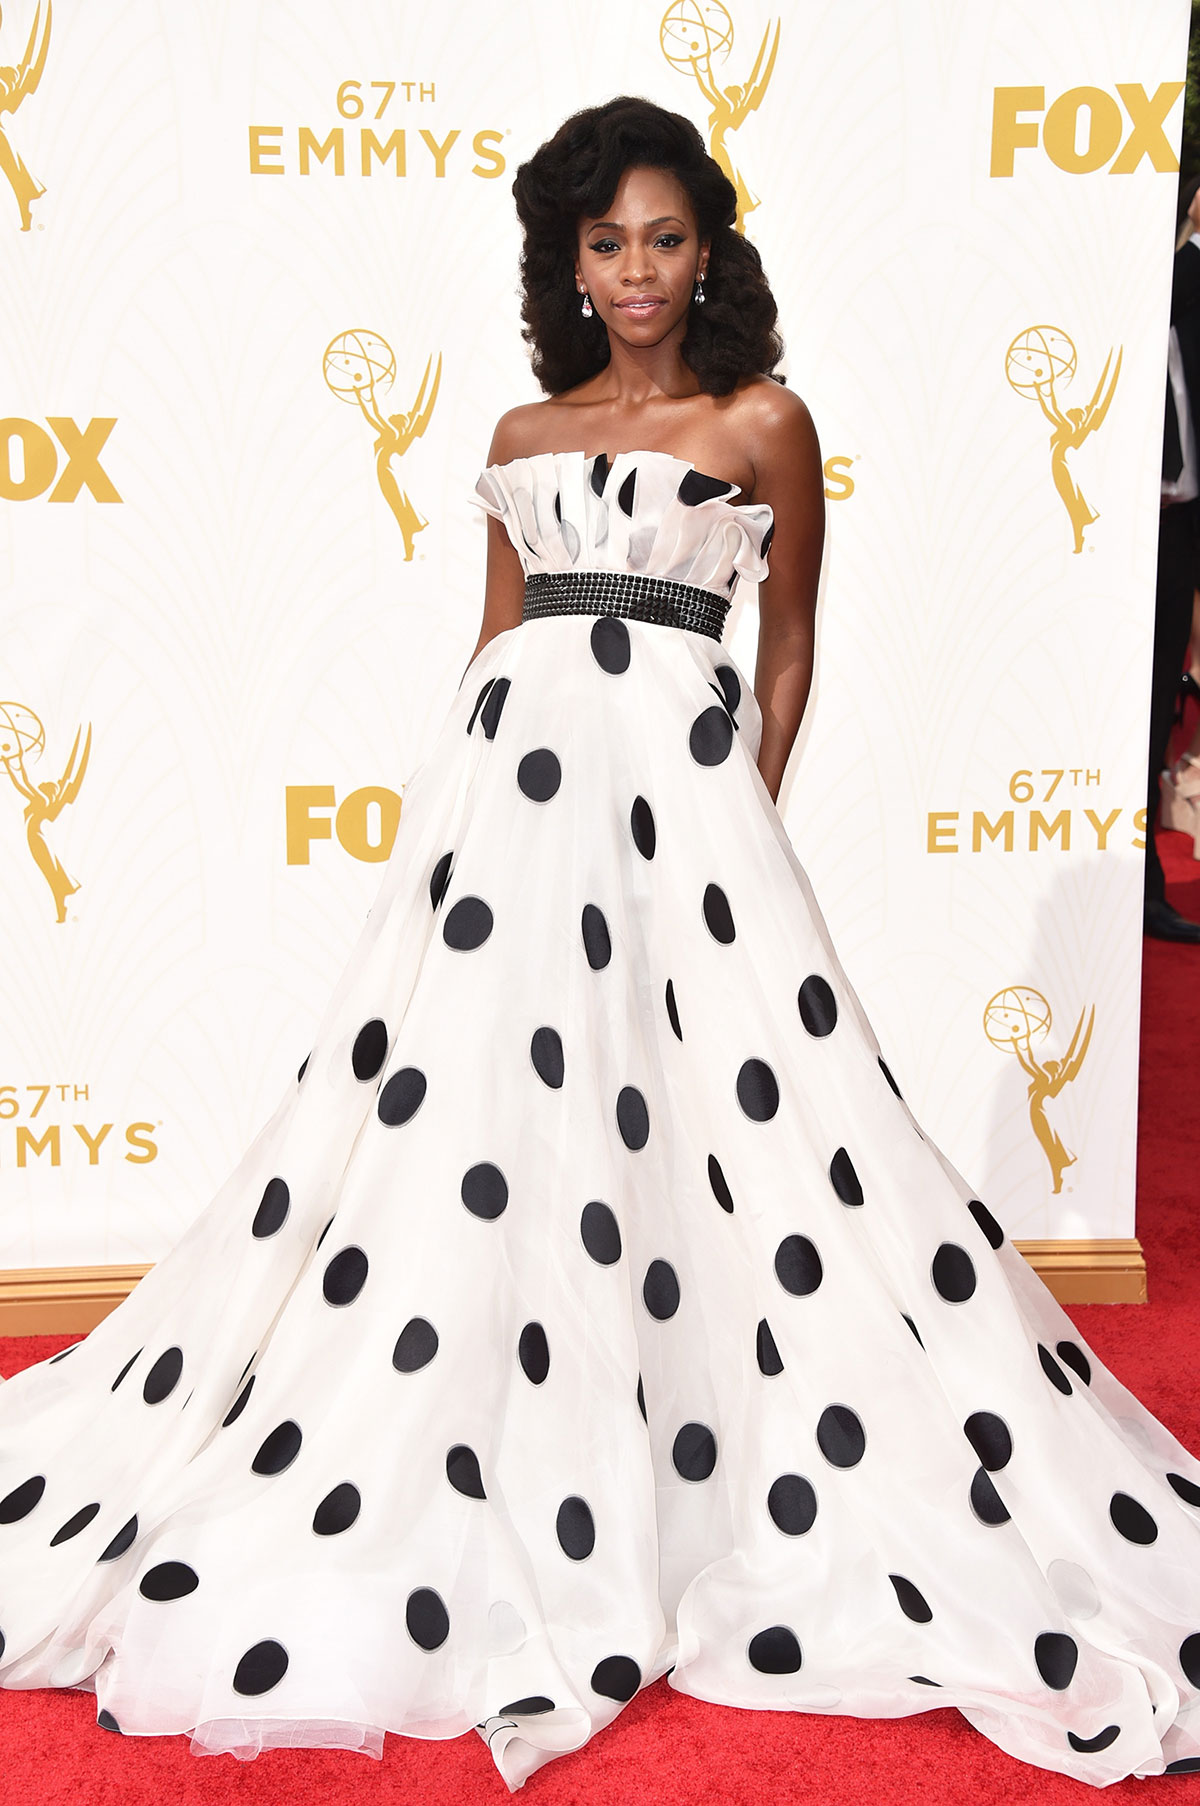 Teyonah Parris 2015 Emmy Awards Red Carpet dress